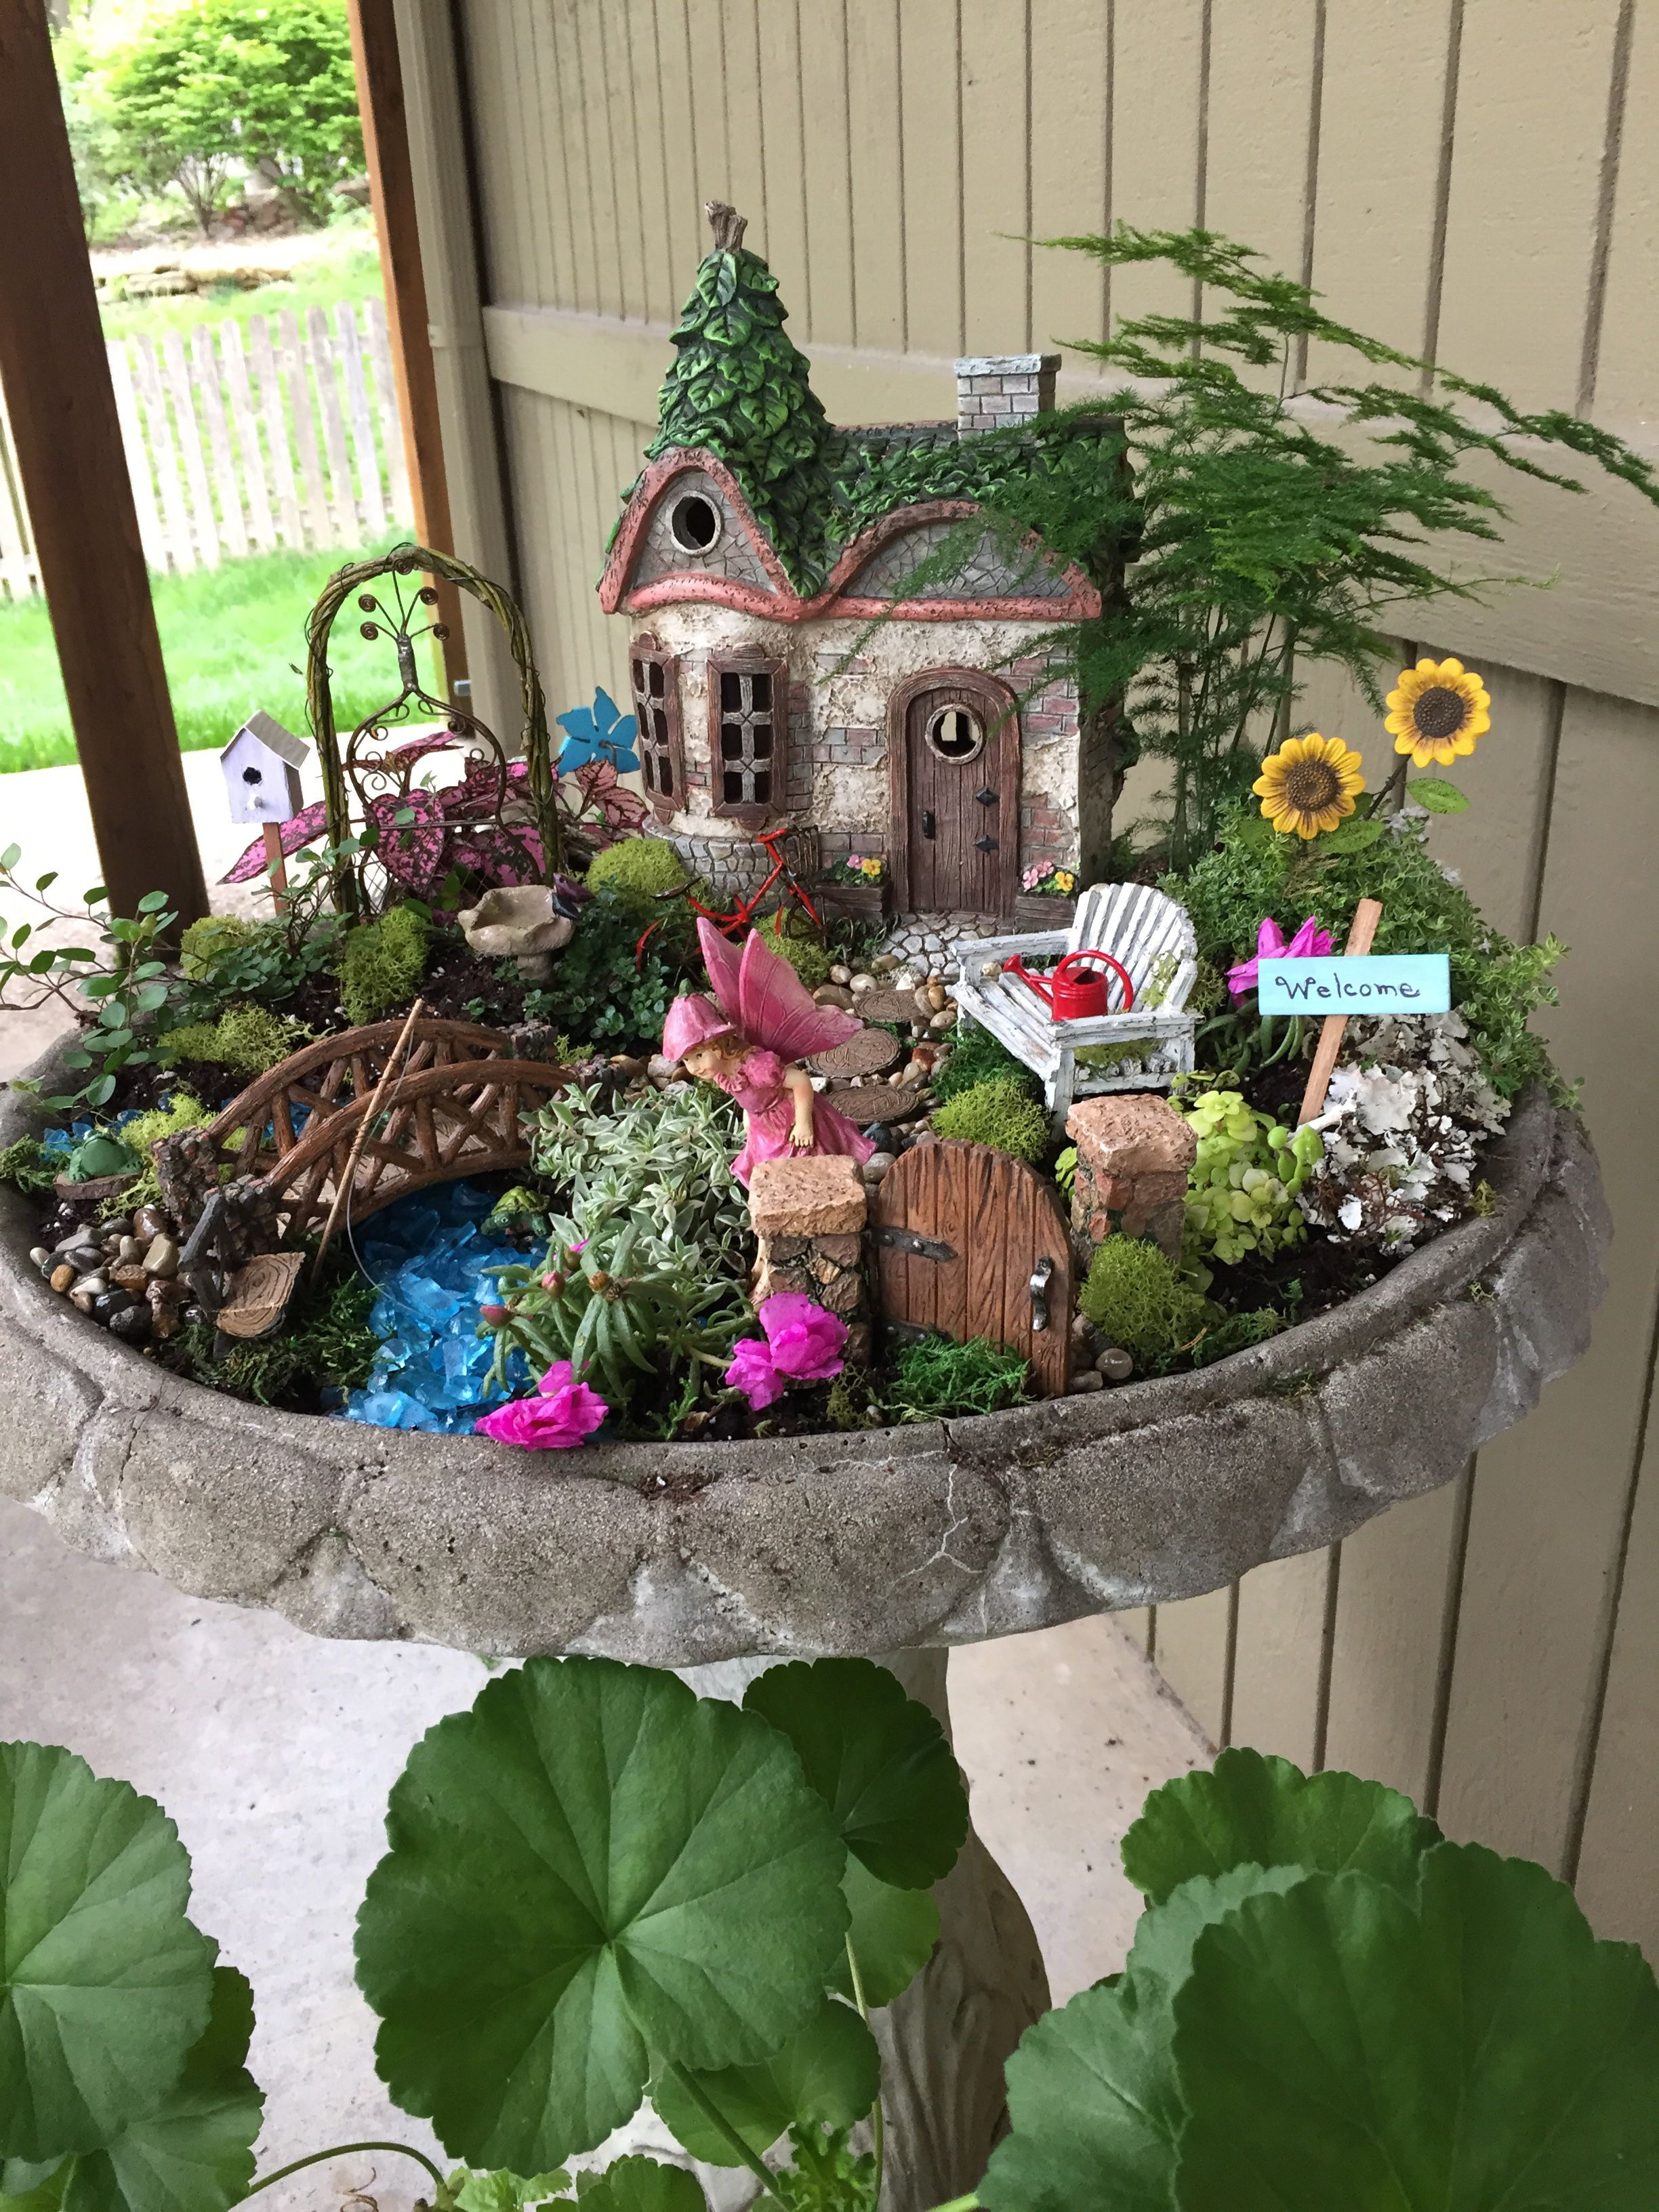 Fairy Garden This Was A Fun Project That My Granddaughter Really Enjoyed Helping With My Garden Your G Fairy Garden My Fairy Garden Miniature Fairy Gardens